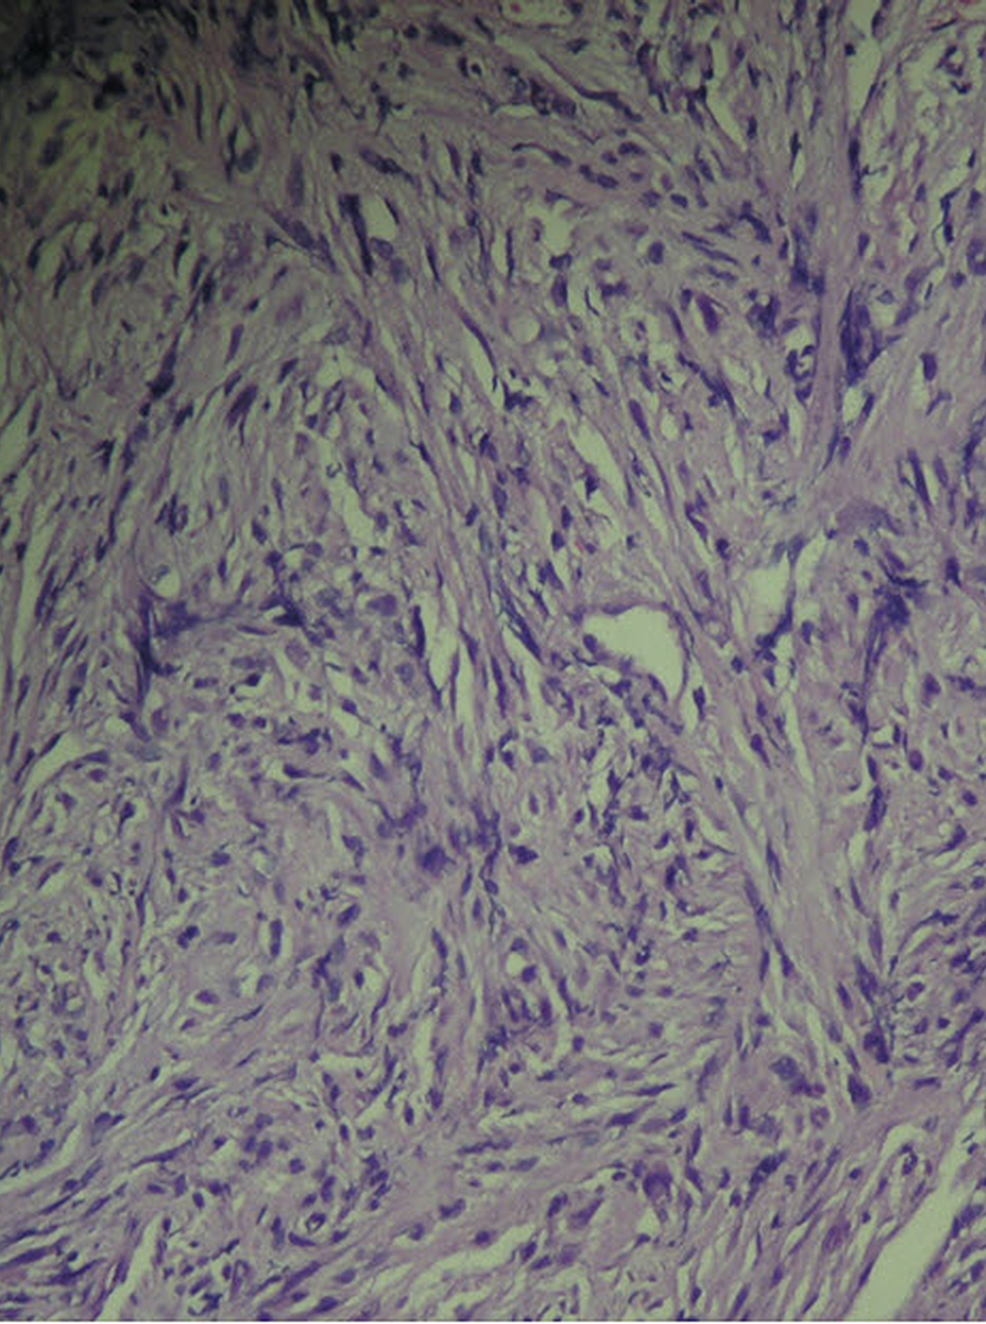 Histopathology-stained-with-H&E:-Spindle-cells-with-short-fascicles-and-pleomorphic-nuclei.